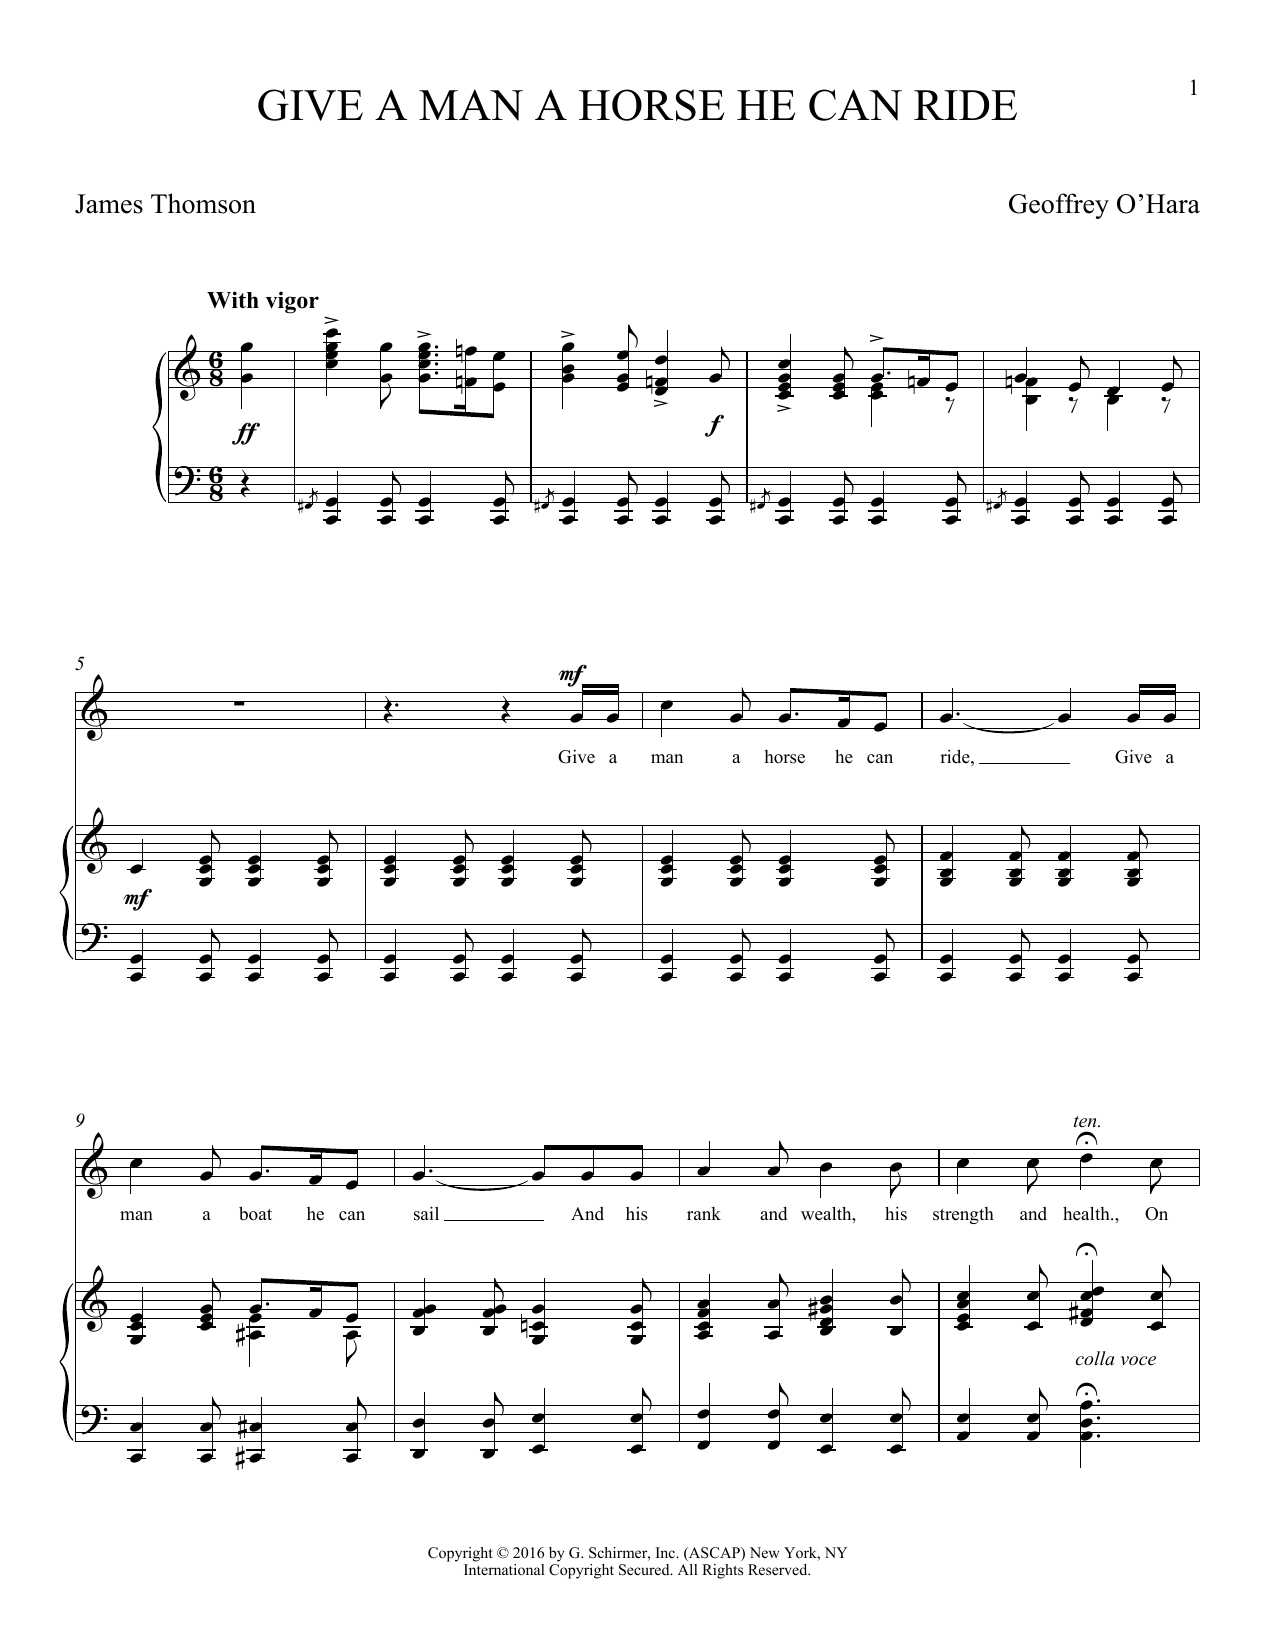 Give A Man A Horse He Can Ride (O'Hara) (Piano & Vocal)